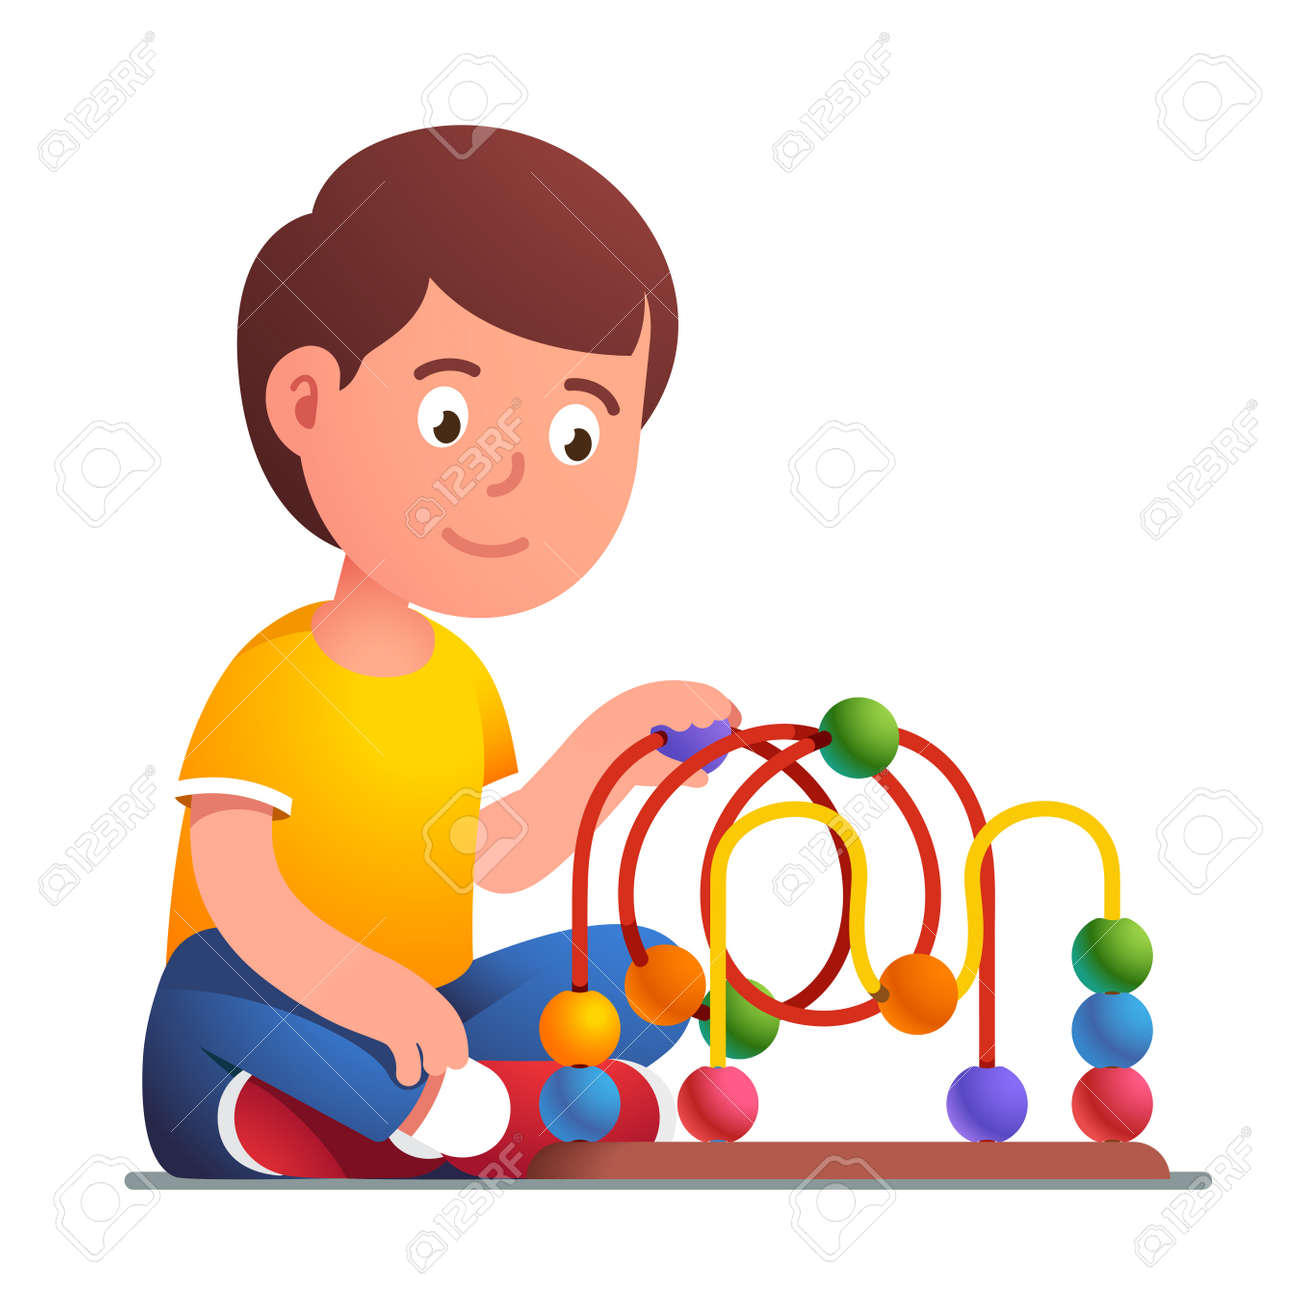 Boy playing wooden bead maze roller coaster toy - 153086091